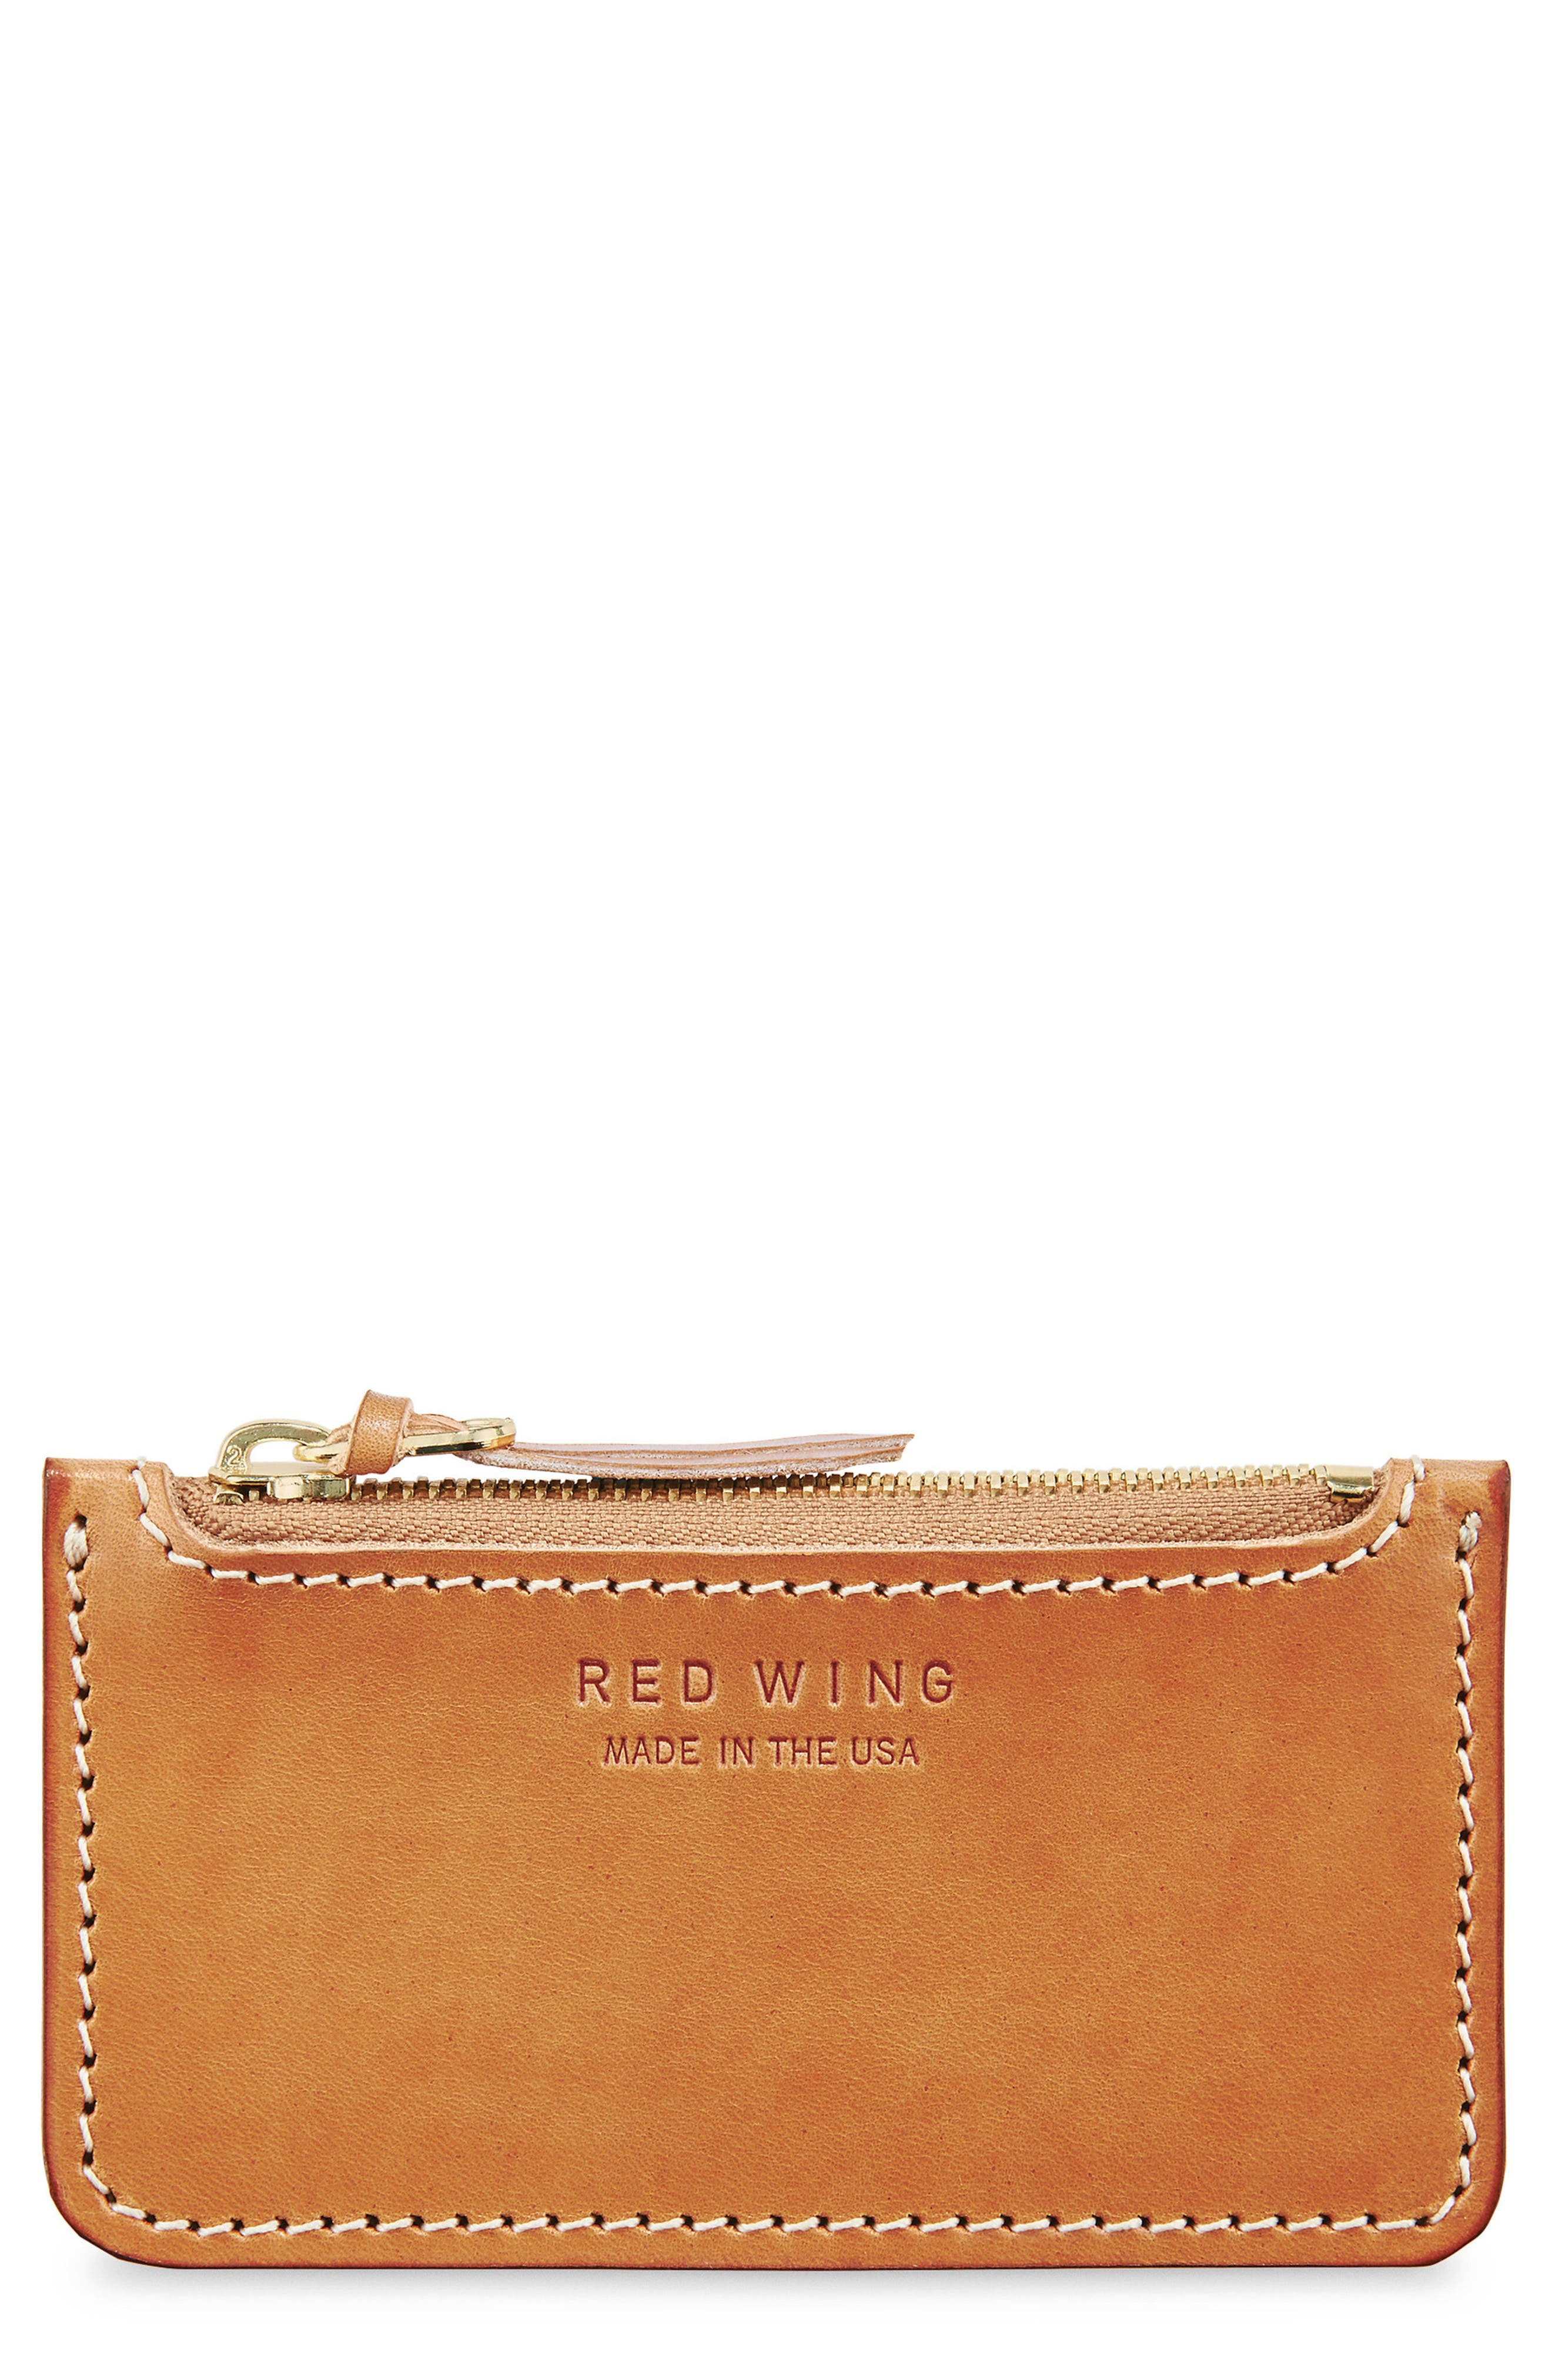 Once Leather Zipper Pouch,                         Main,                         color, Tanned Vegetable